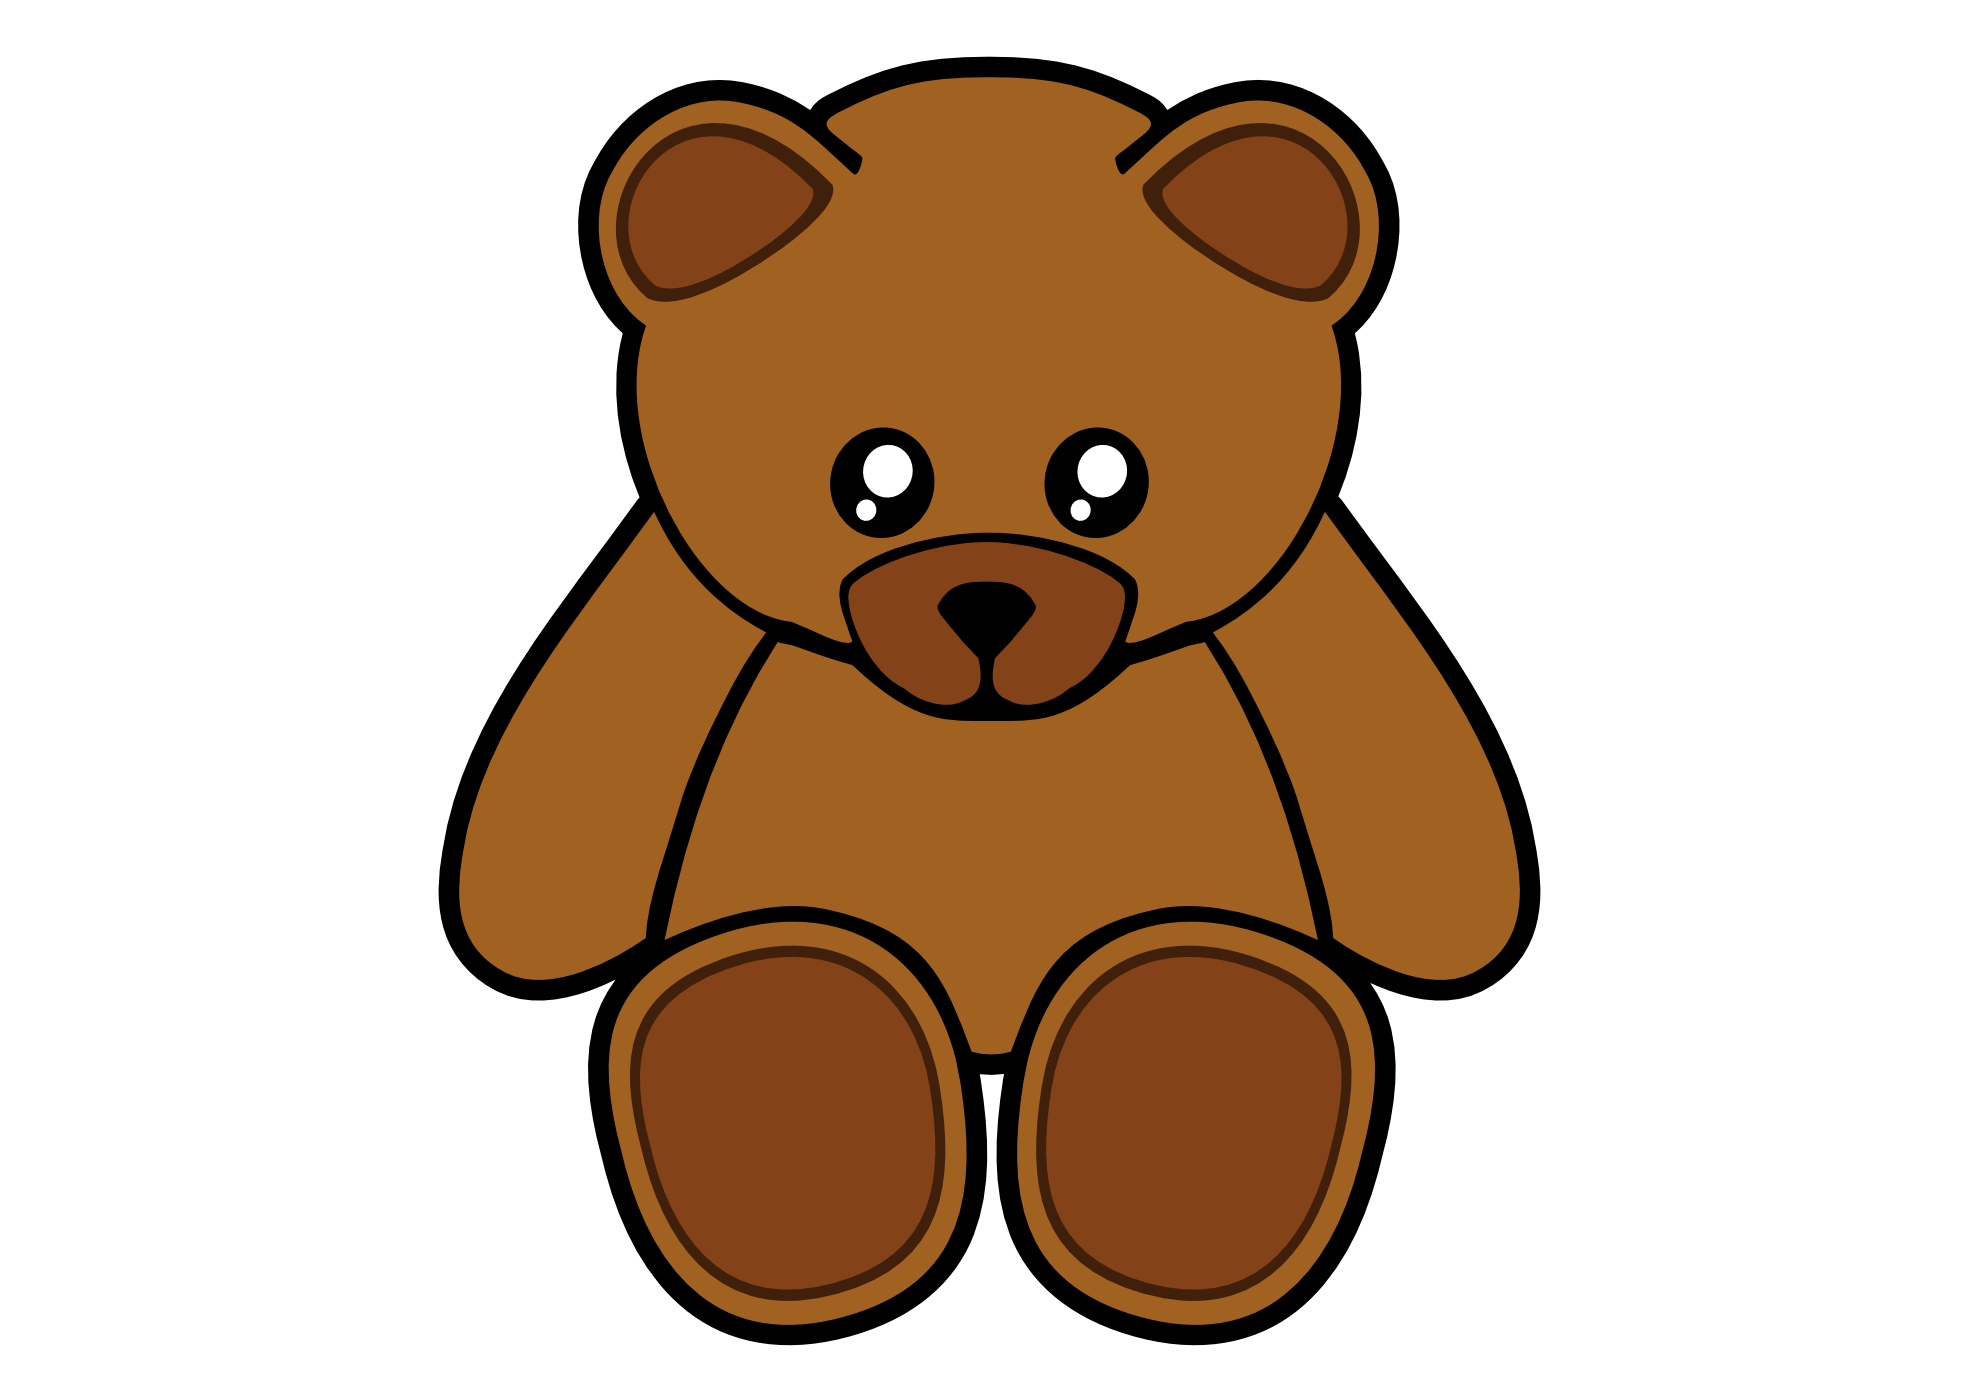 Teddy bear outline clip art 2 3